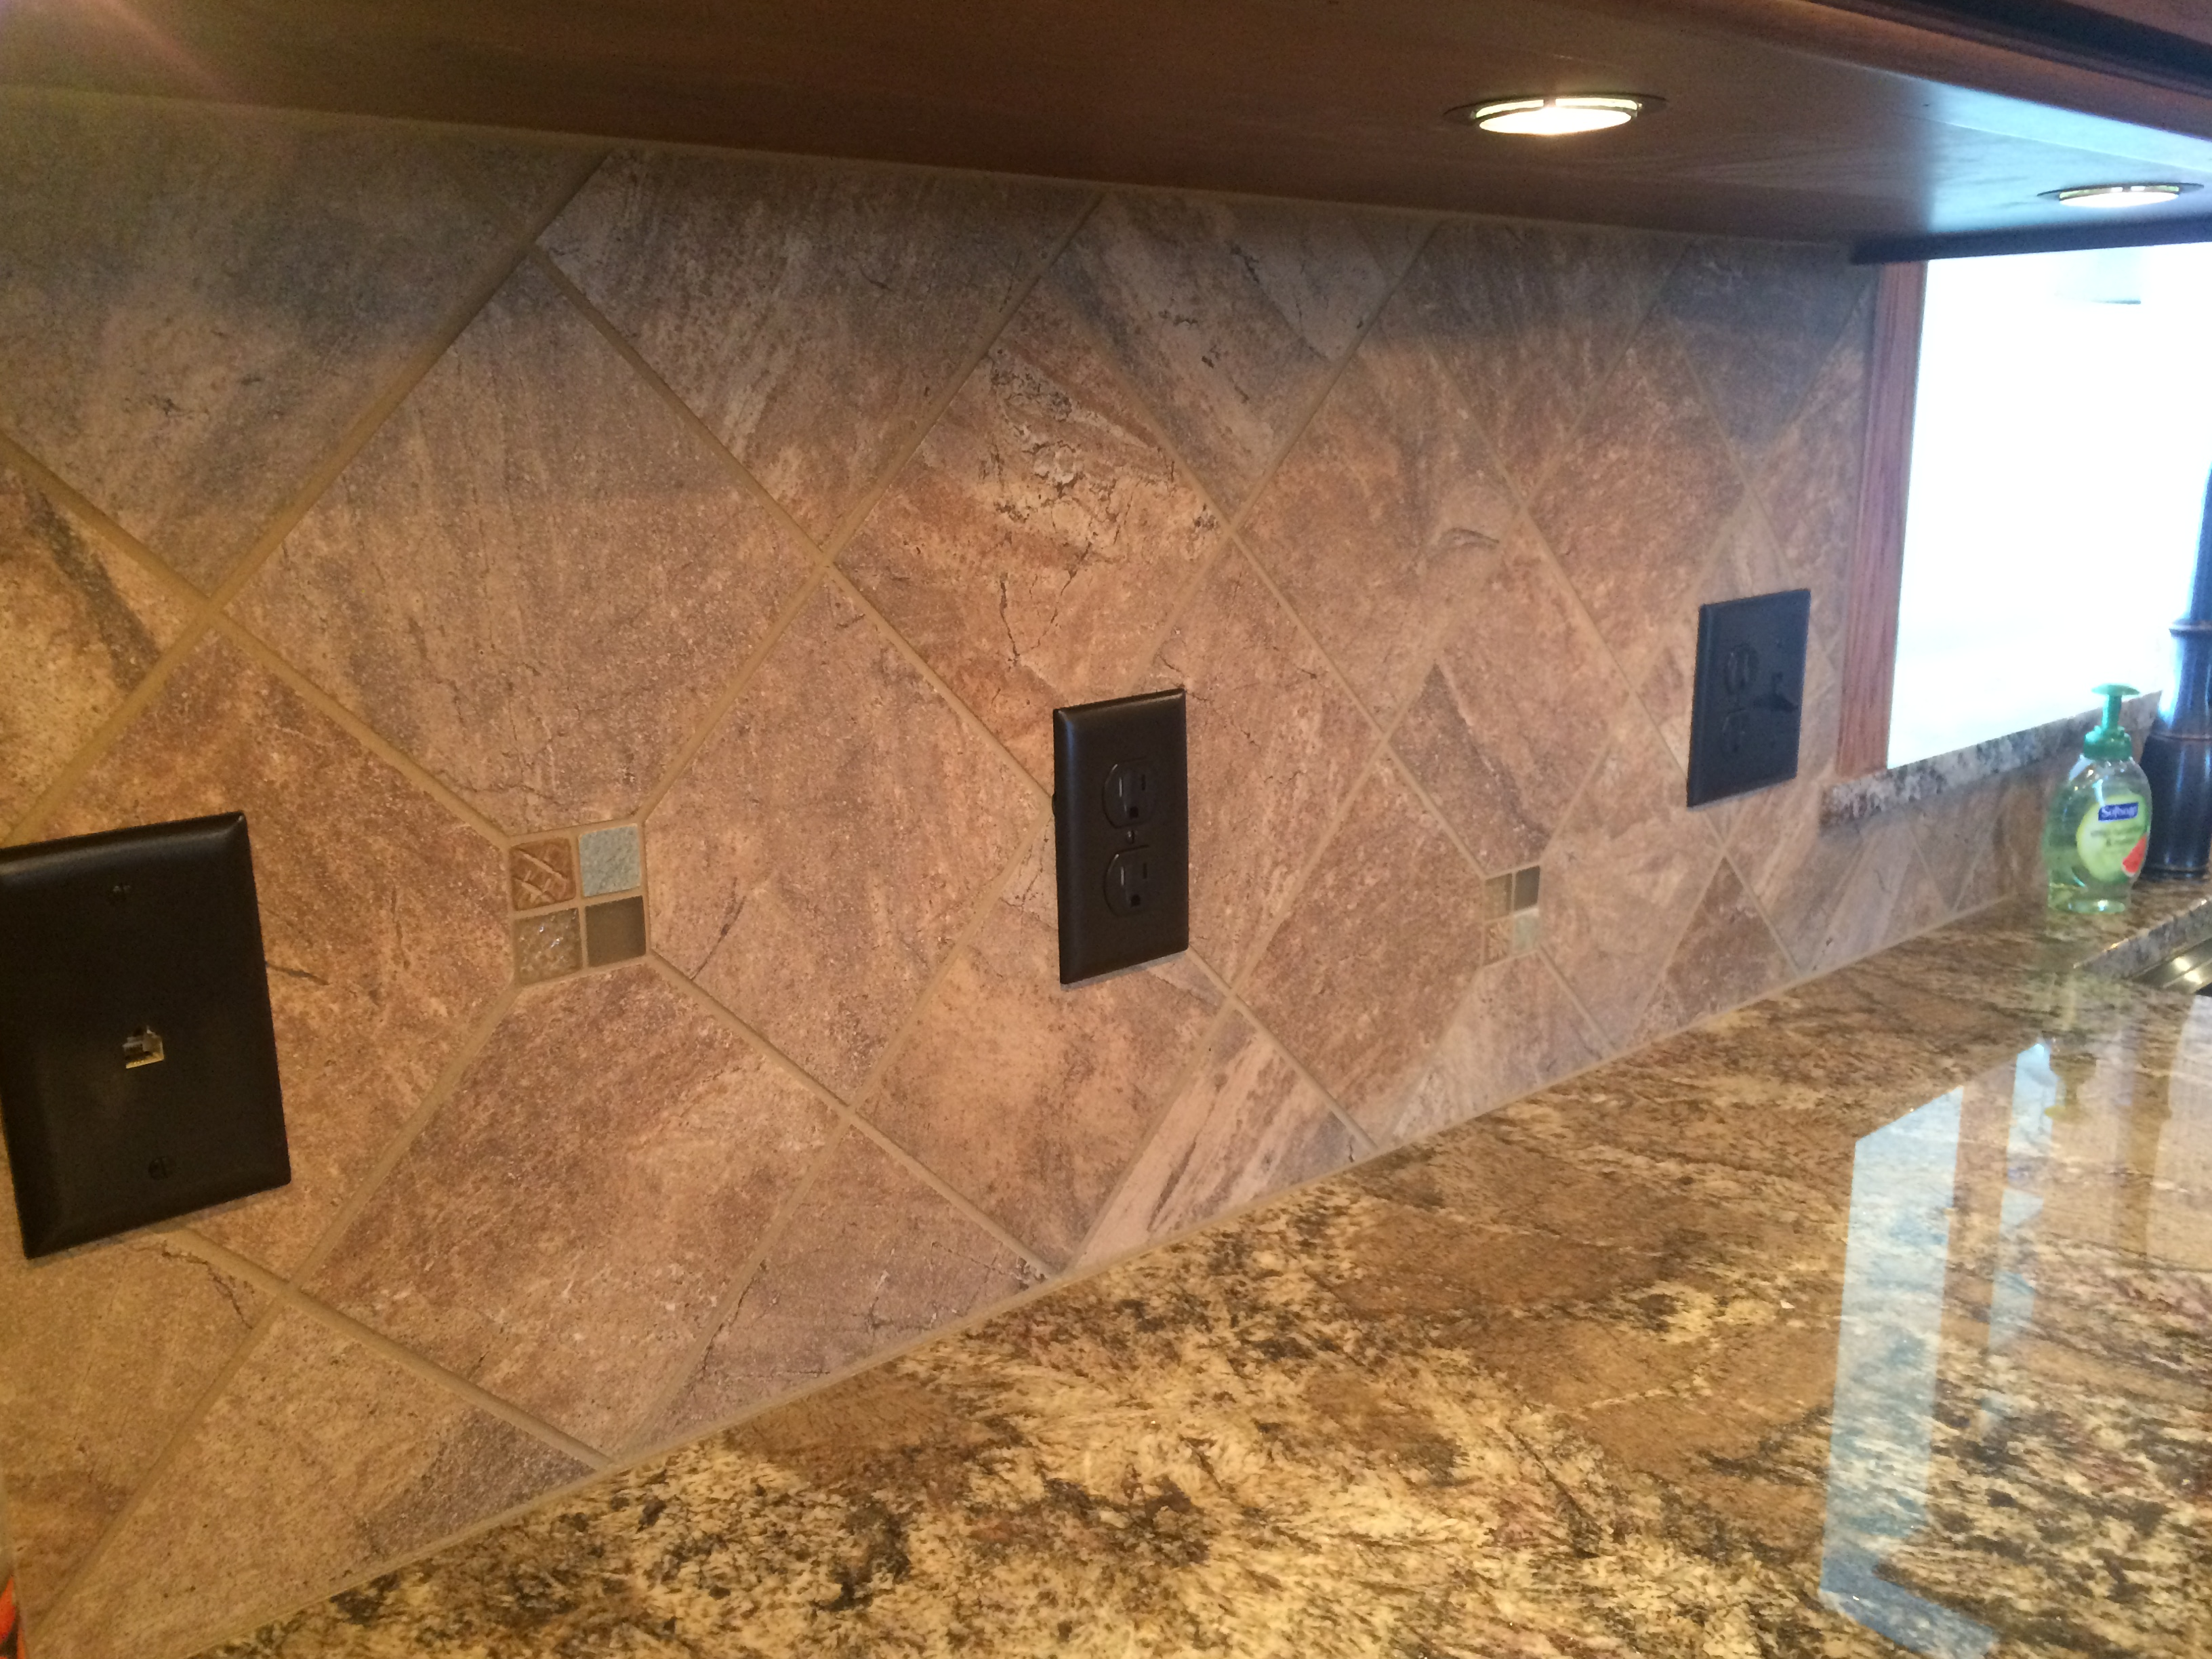 Stone backsplash and counter